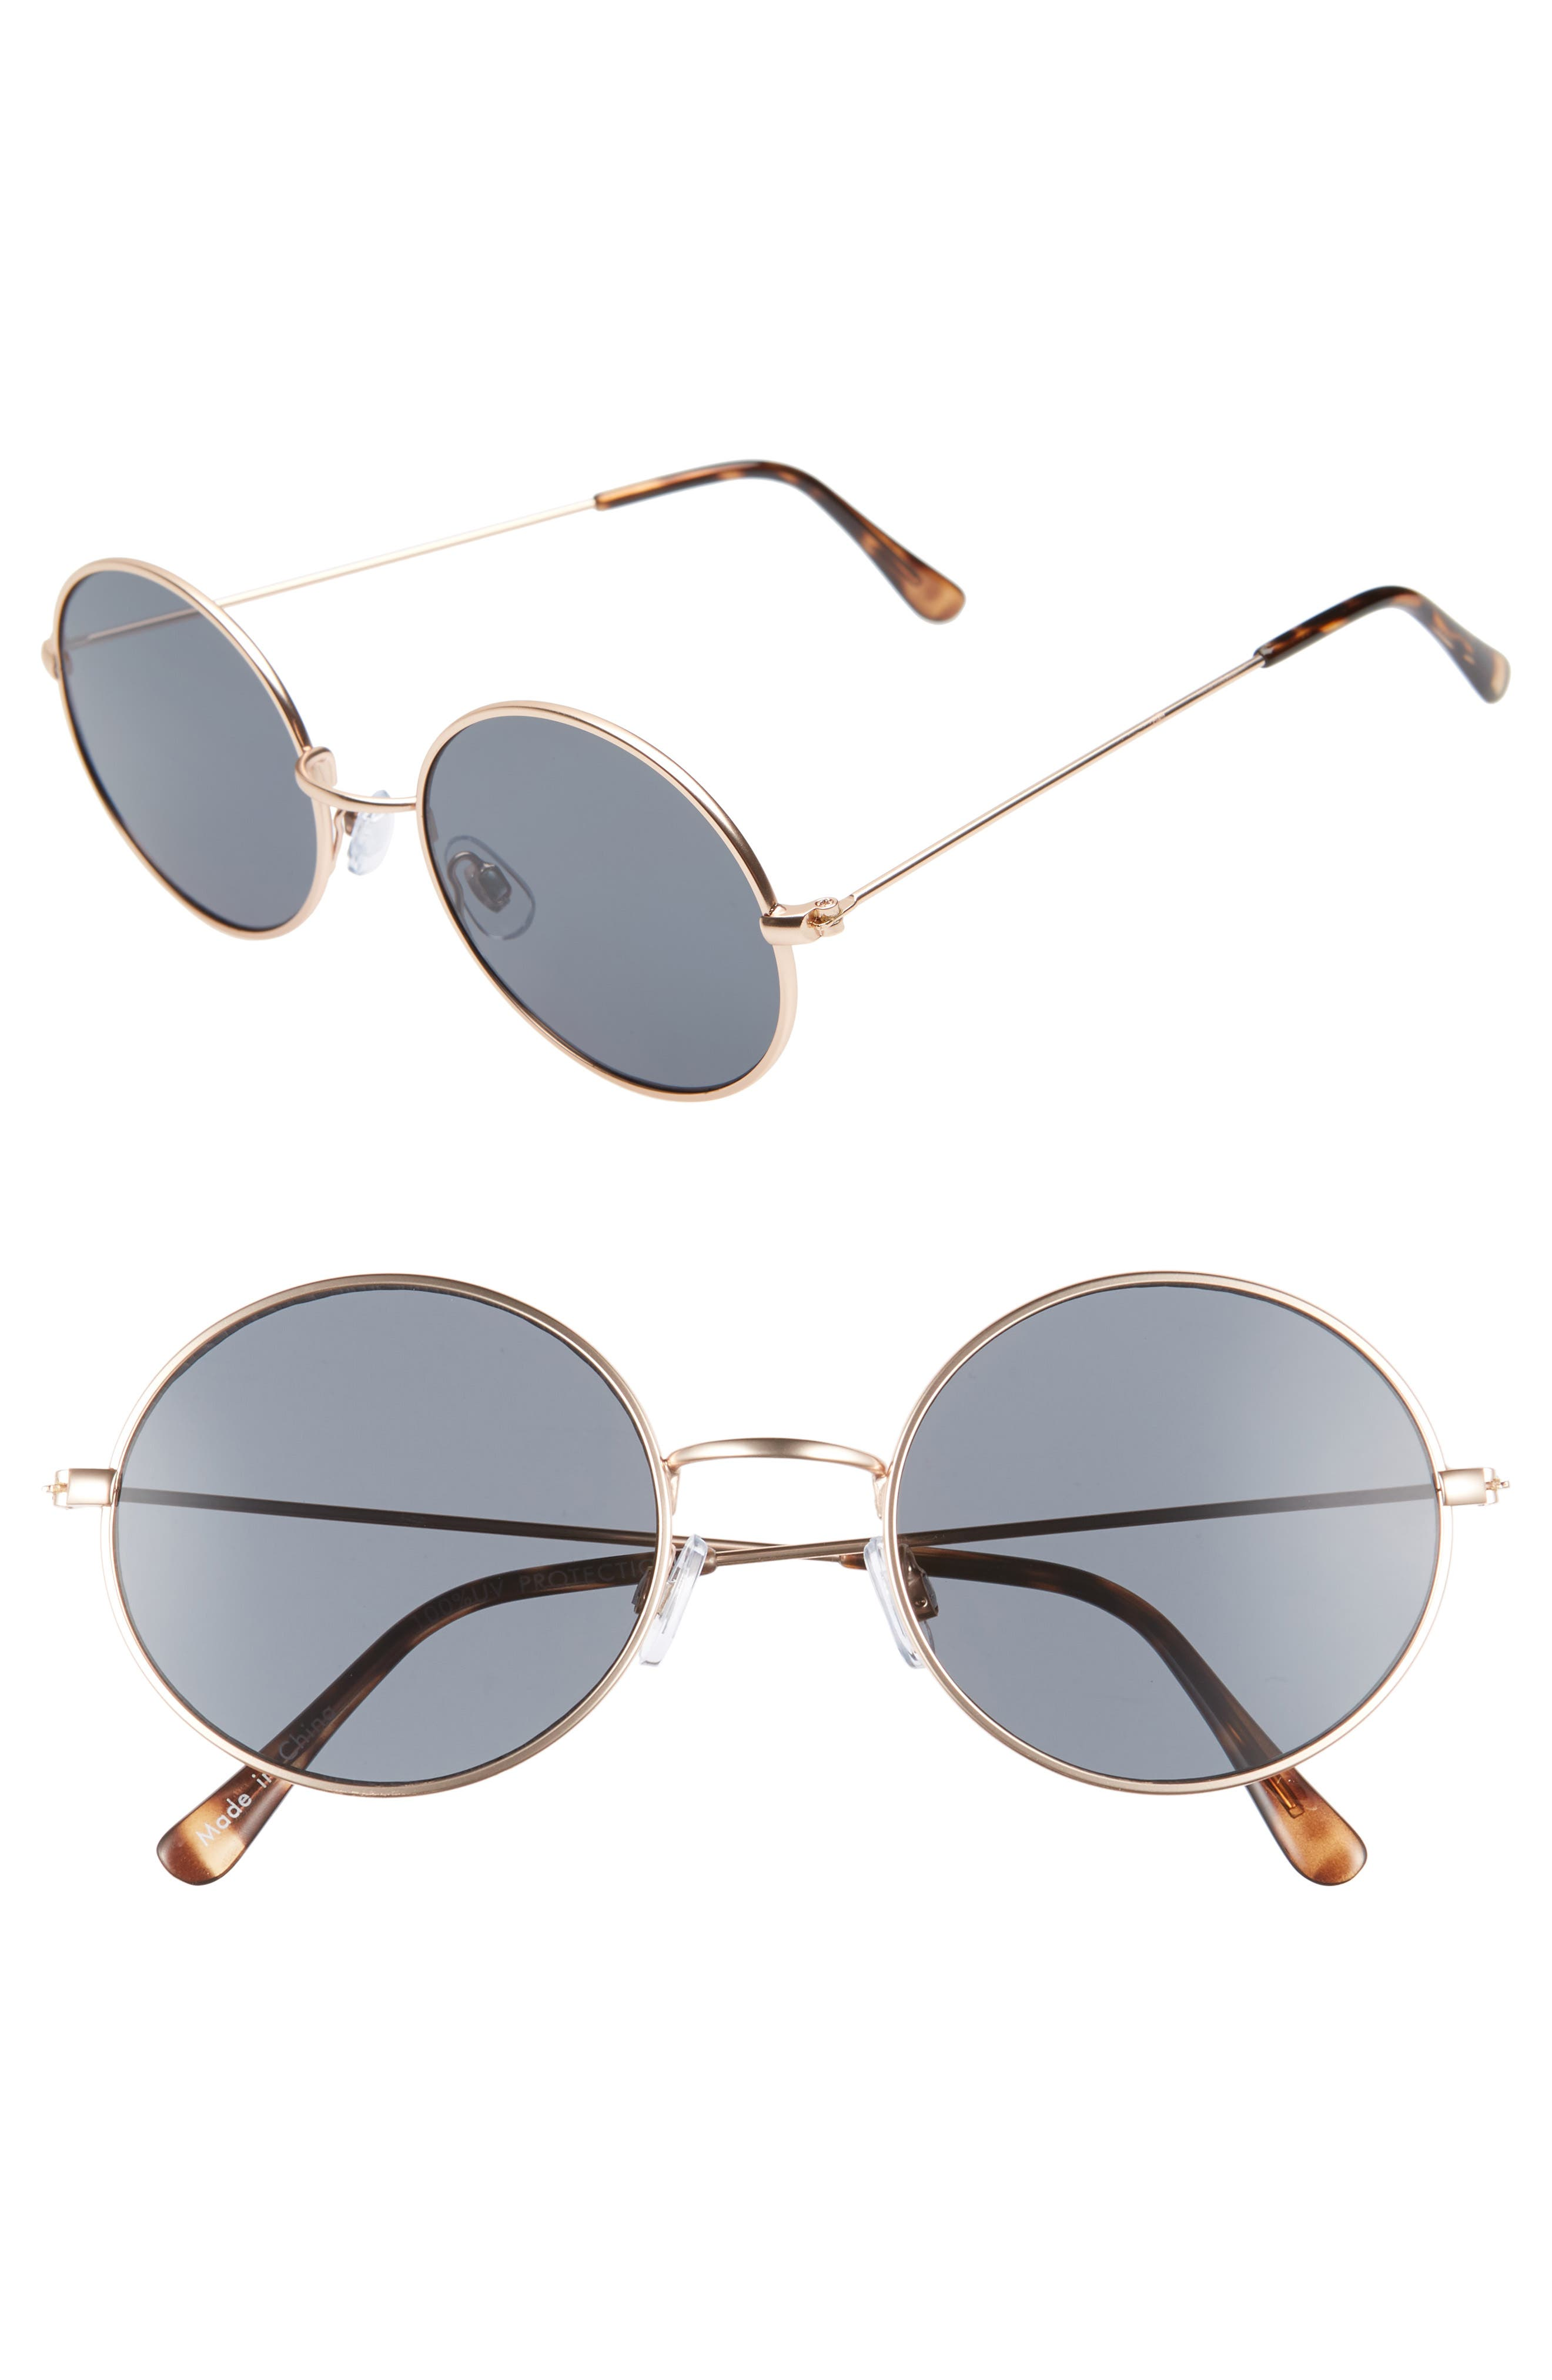 53mm Flat Round Sunglasses,                             Main thumbnail 1, color,                             GOLD/ BLACK